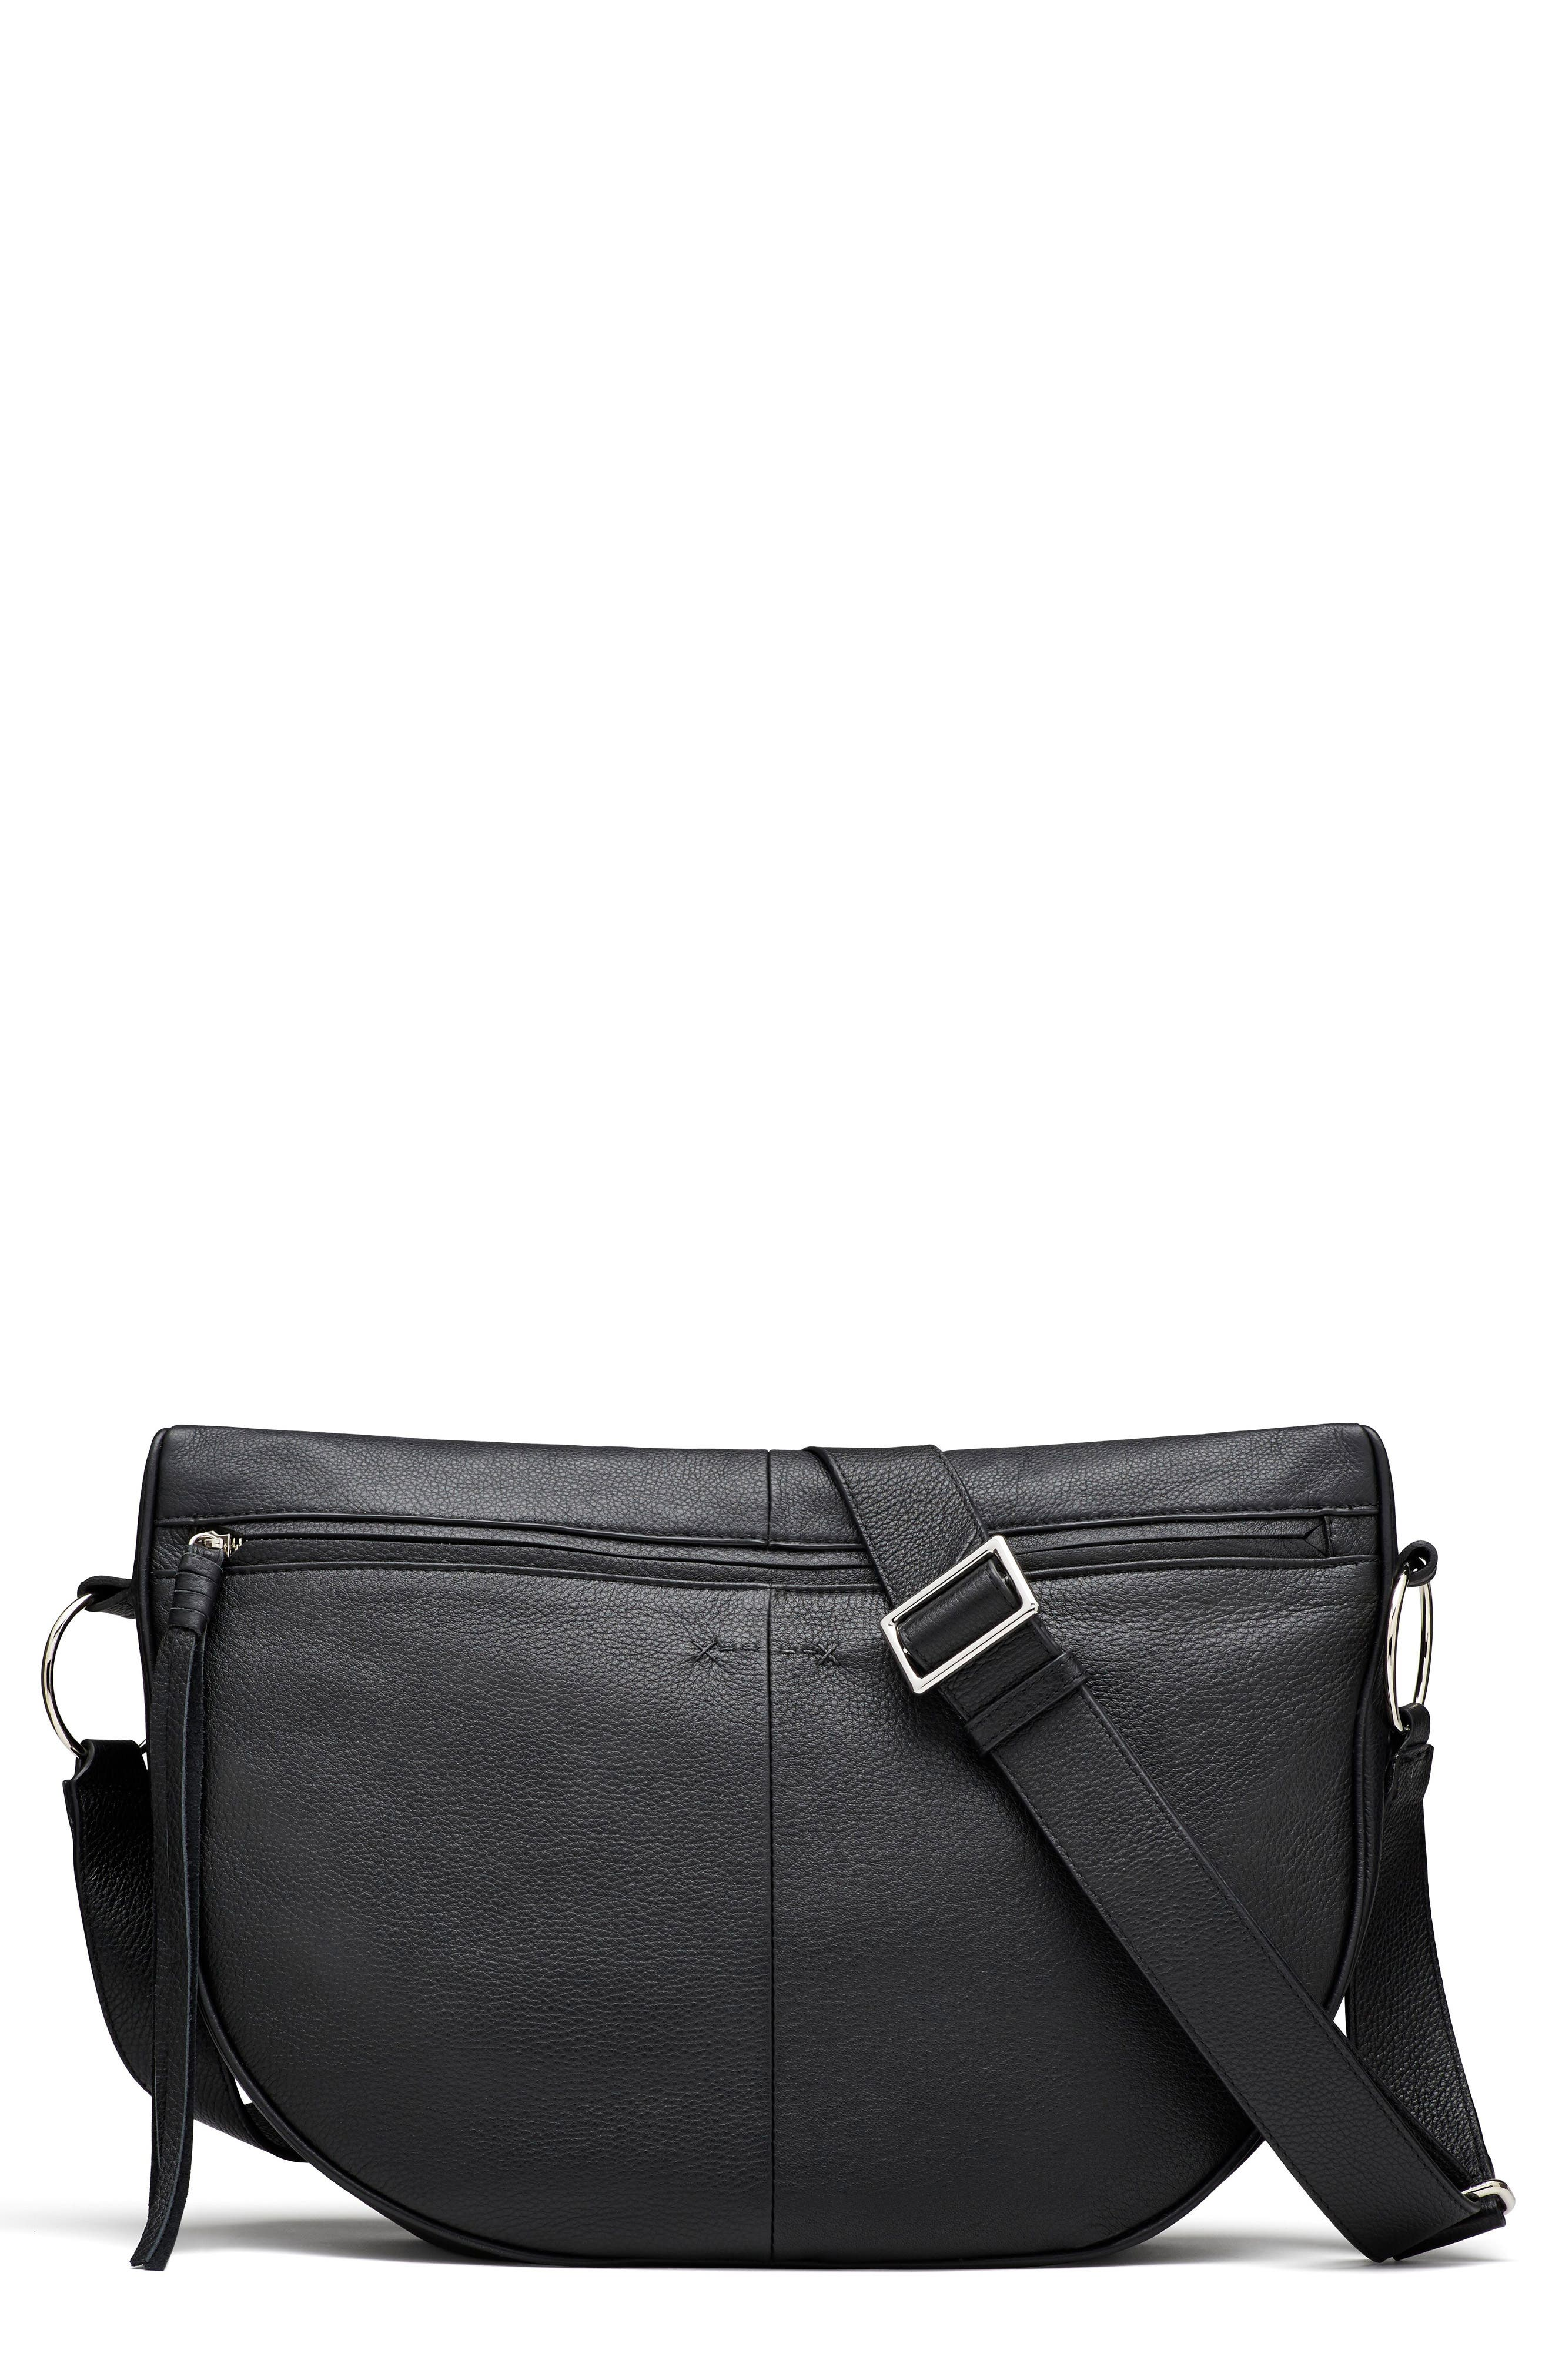 Elizabeth and James Finley Moon Leather Crossbody Bag